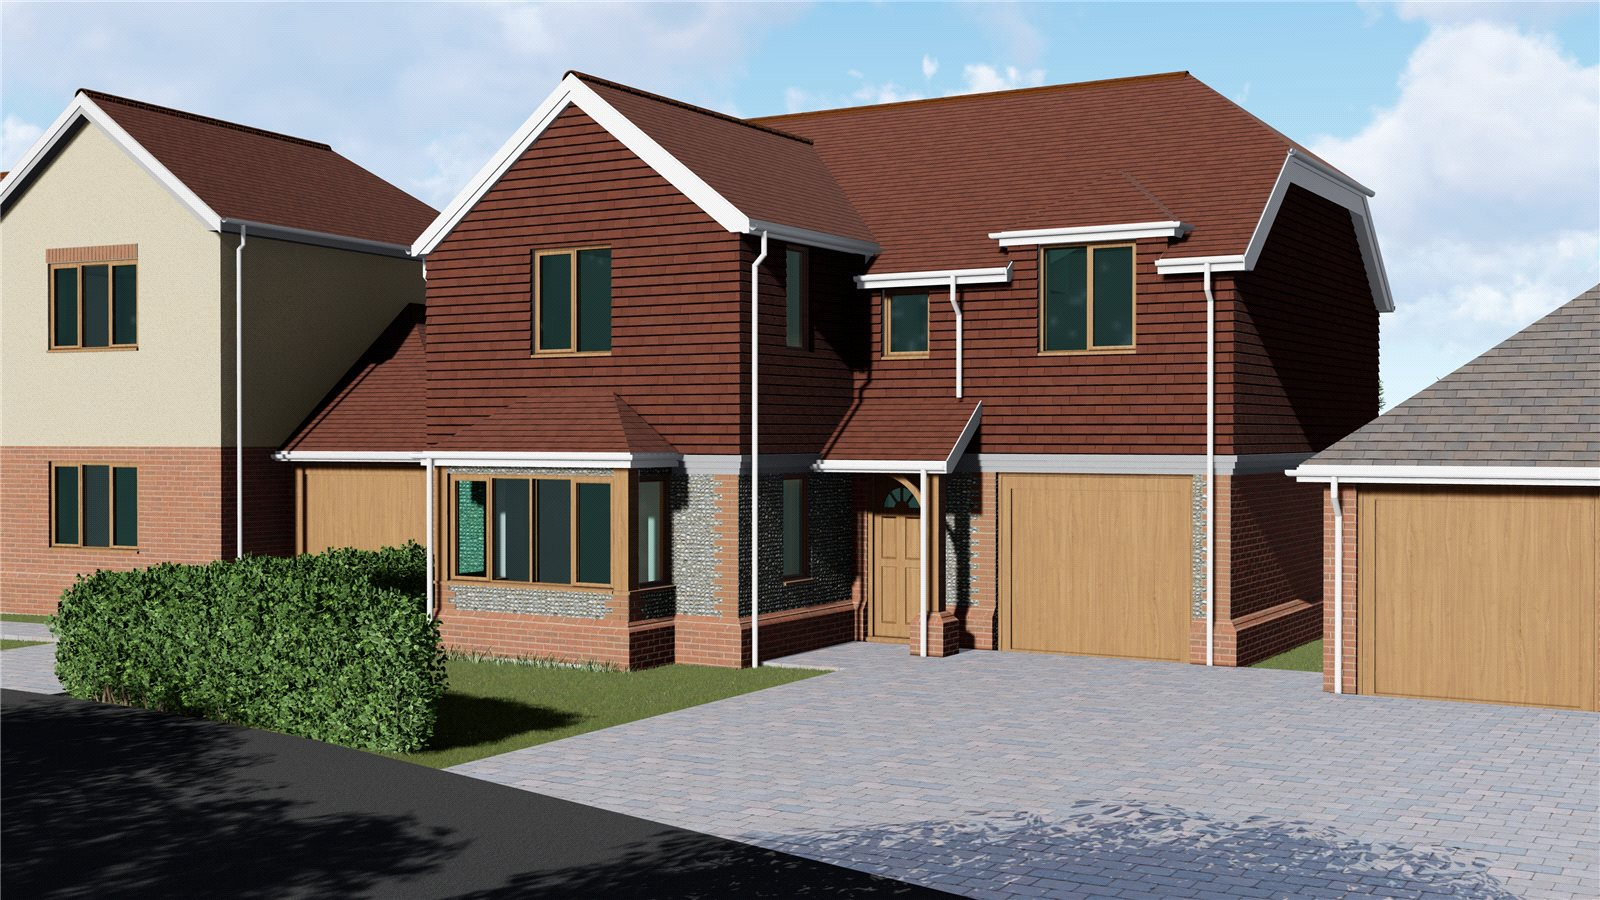 4 bed house for sale in Starlings View, Arundel Road, Angmering, BN16